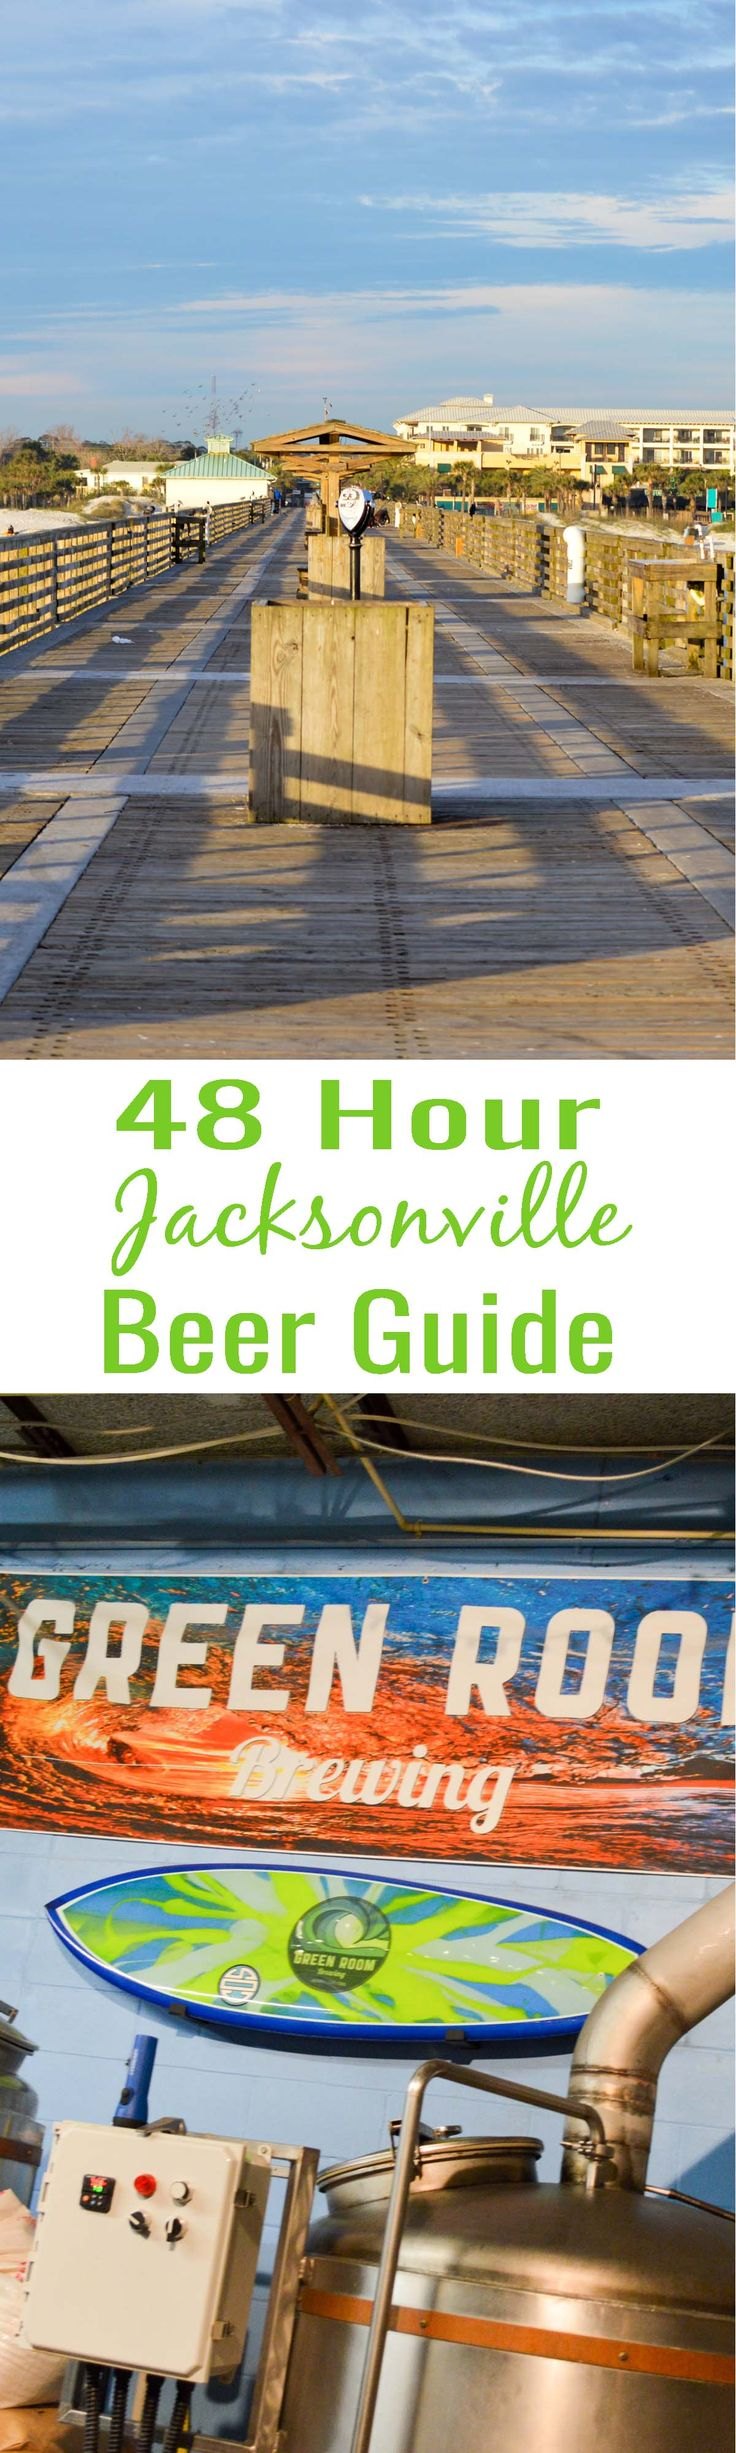 48 Hours in Jacksonville Beach: Enjoy a craft beer filled beach weekend in Jacksonville, Florida. My Jacksonville Brewery Tour highlights the best of the beach and craft beer scene!